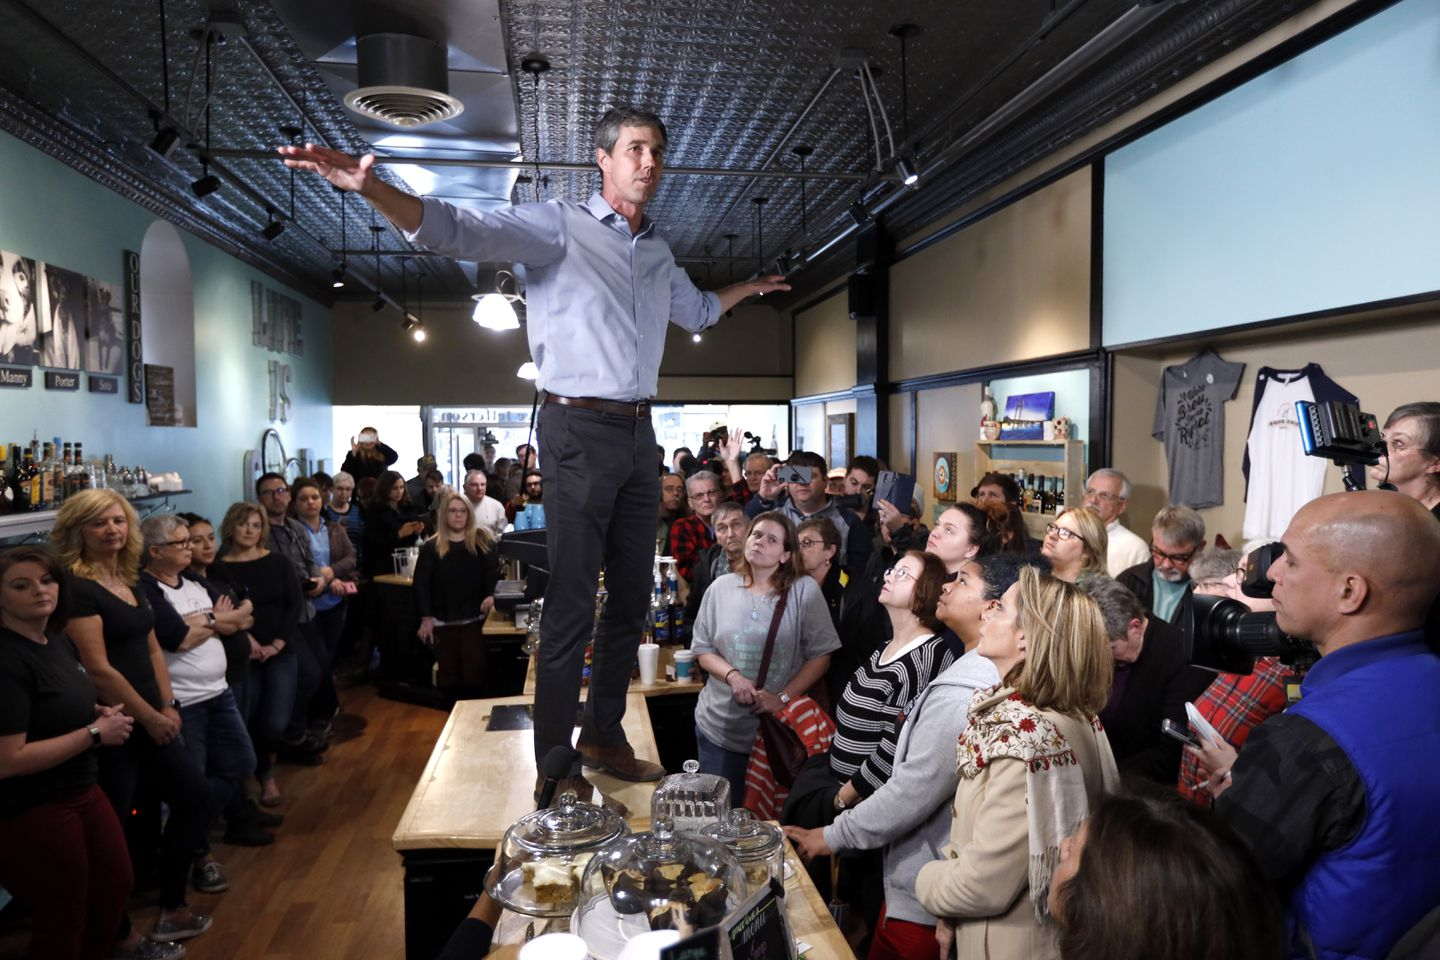 O'Rourke turned a countertop at the Beancounter Coffeehouse & Drinkery in Burlington, Iowa, into something like a surfboard, extending his arms as if riding a gnarly wave at a meet-and-greet.